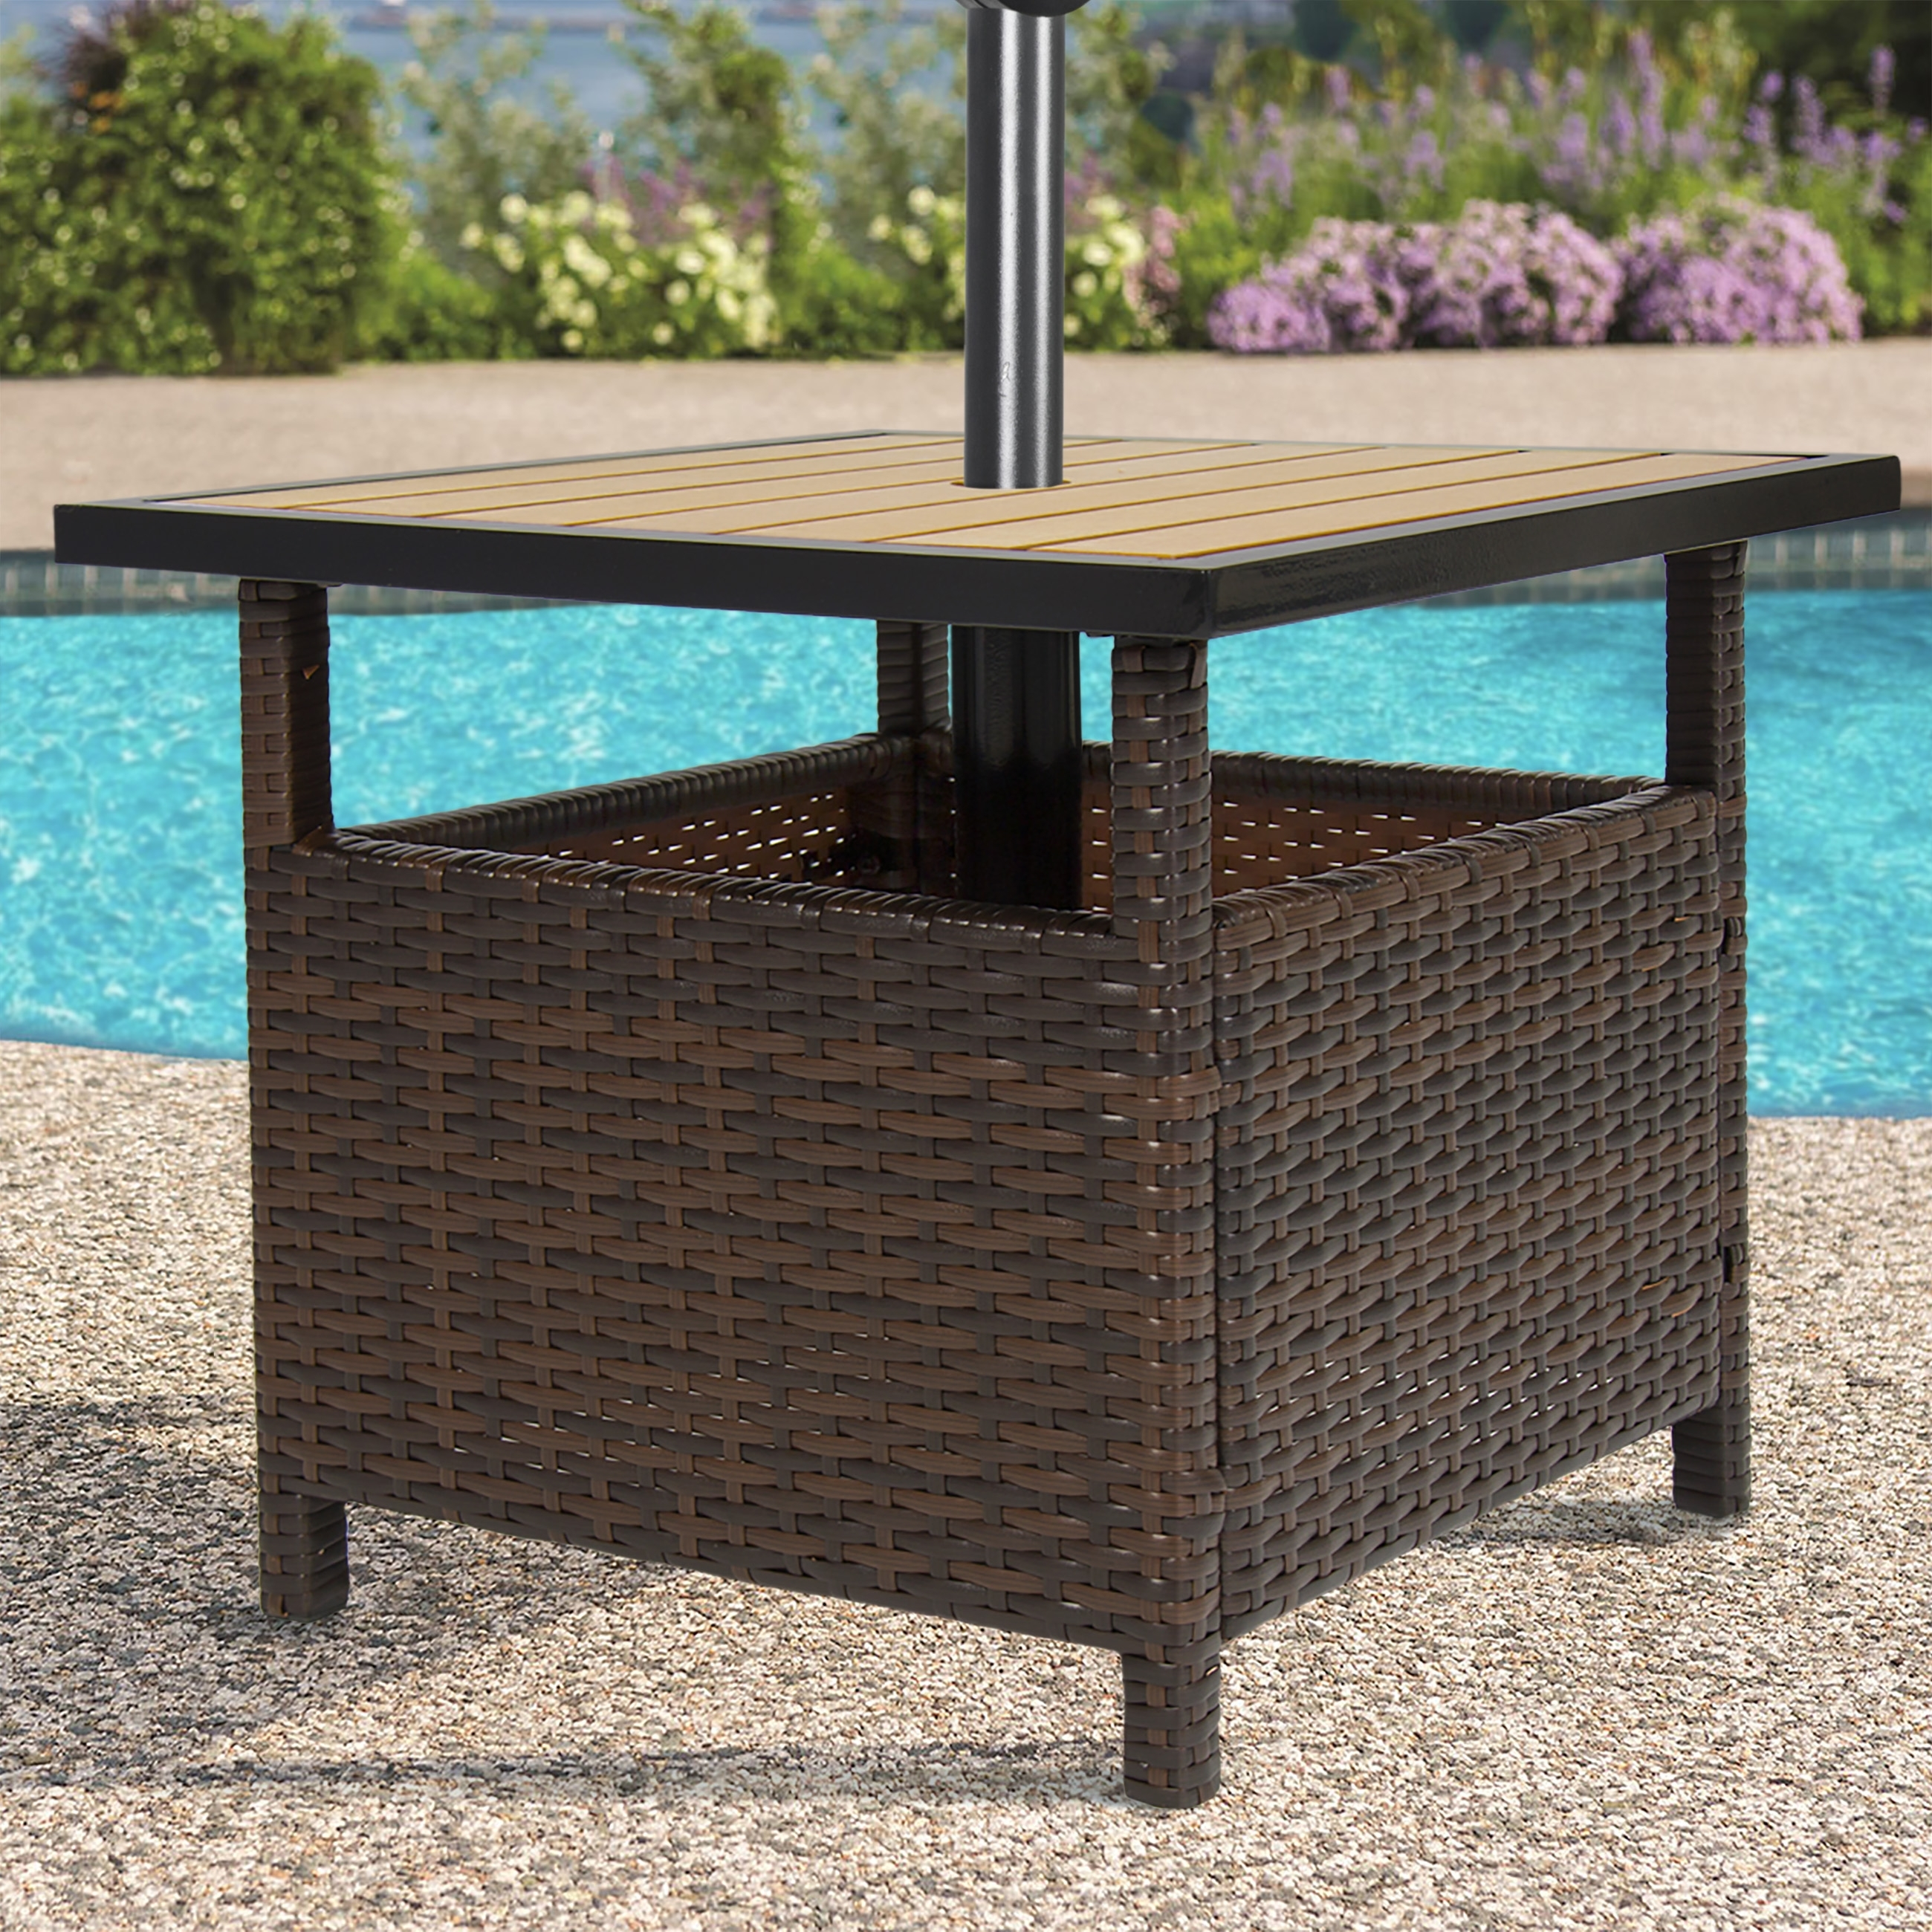 Bestchoiceproducts: Best Choice Products Outdoor Furniture Wicker Inside Most Recent Patio Umbrellas With Accent Table (Gallery 9 of 20)